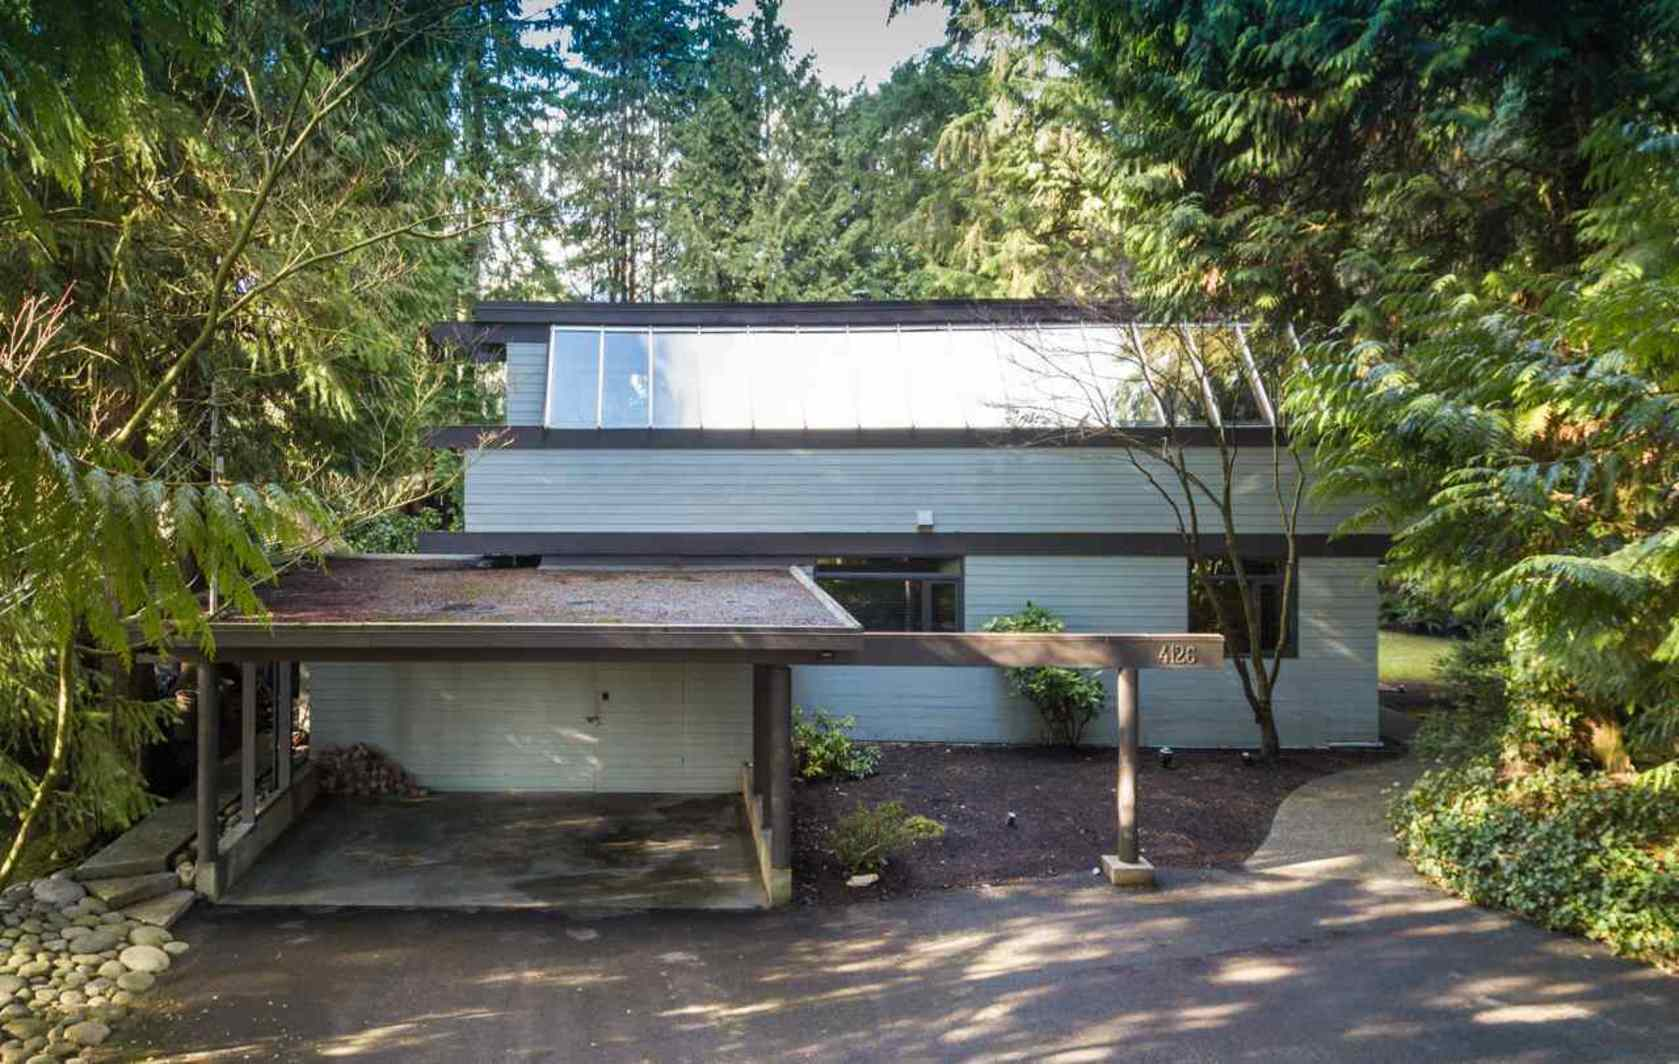 4126-virginia-crescent-canyon-heights-nv-north-vancouver-01 at 4126 Virginia Crescent, Canyon Heights NV, North Vancouver